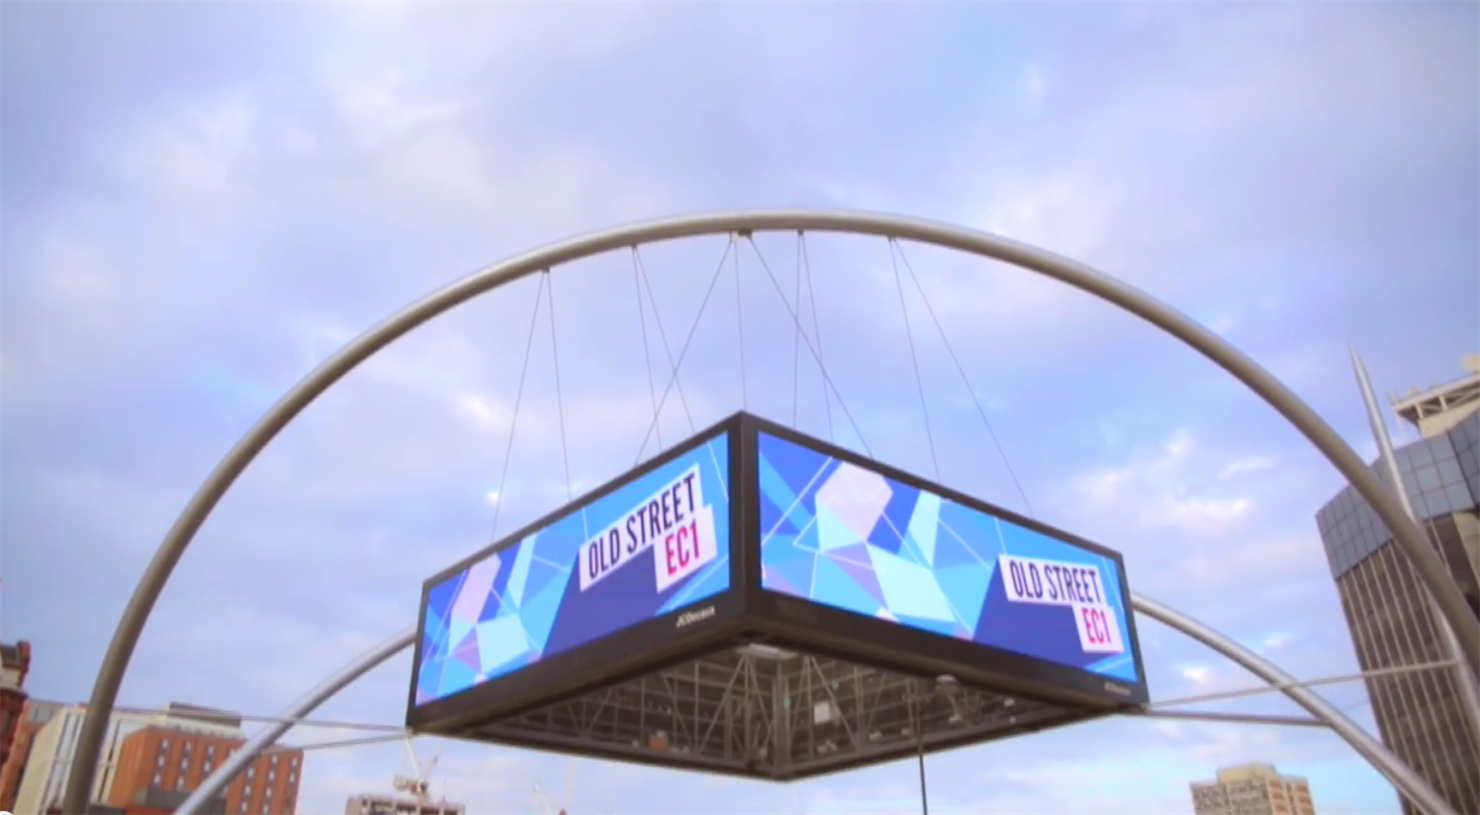 jcdecaux growth strategy Jcdecaux launches a new data division to support its growth strategy  paris, may 22, 2018 – jcdecaux sa (euronext paris: dec), the number one outdoor advertising company worldwide, has set up a.